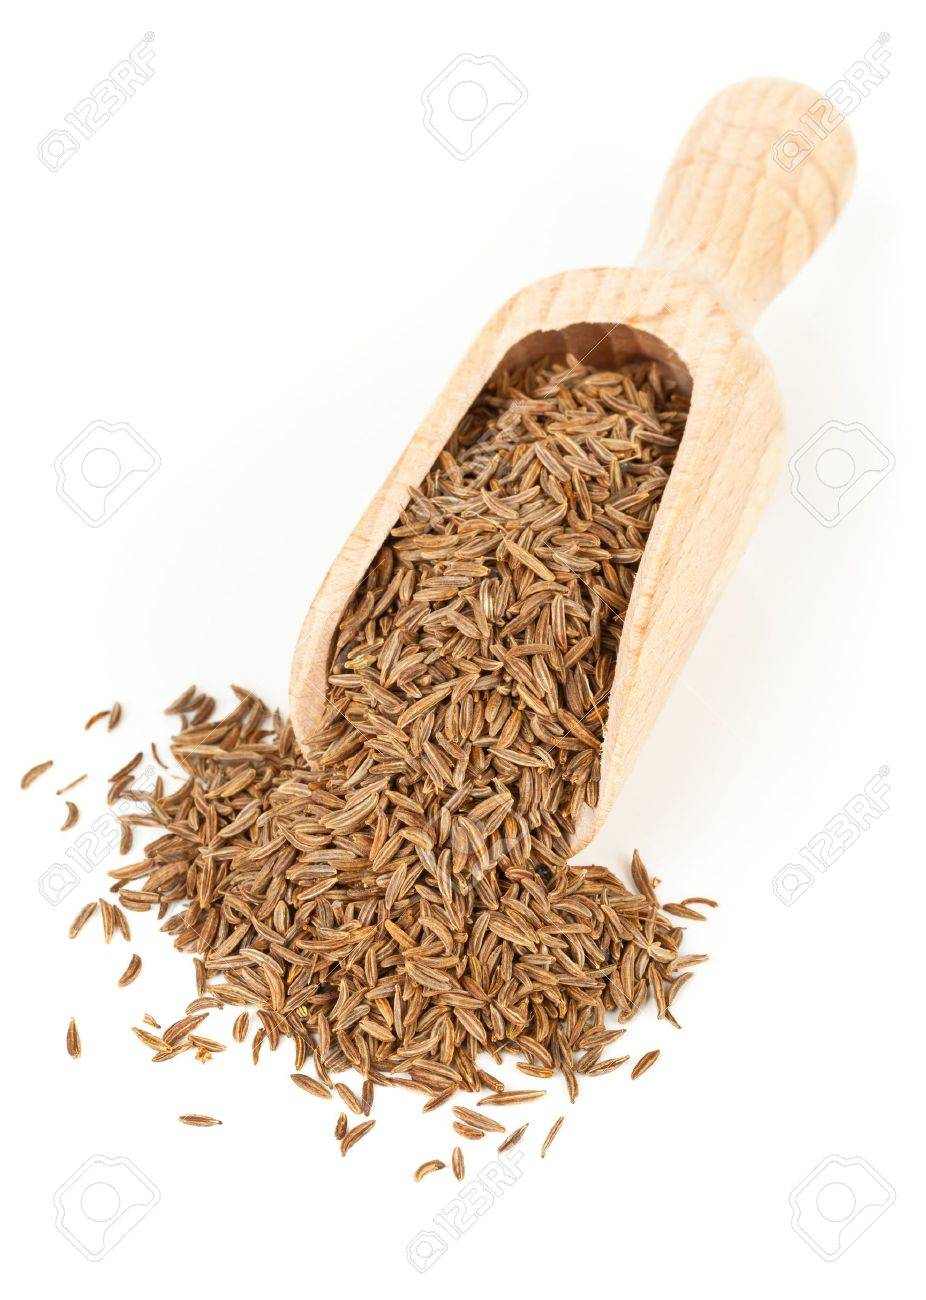 Caraway Cumin seeds in wooden scoop over white background - 15557854